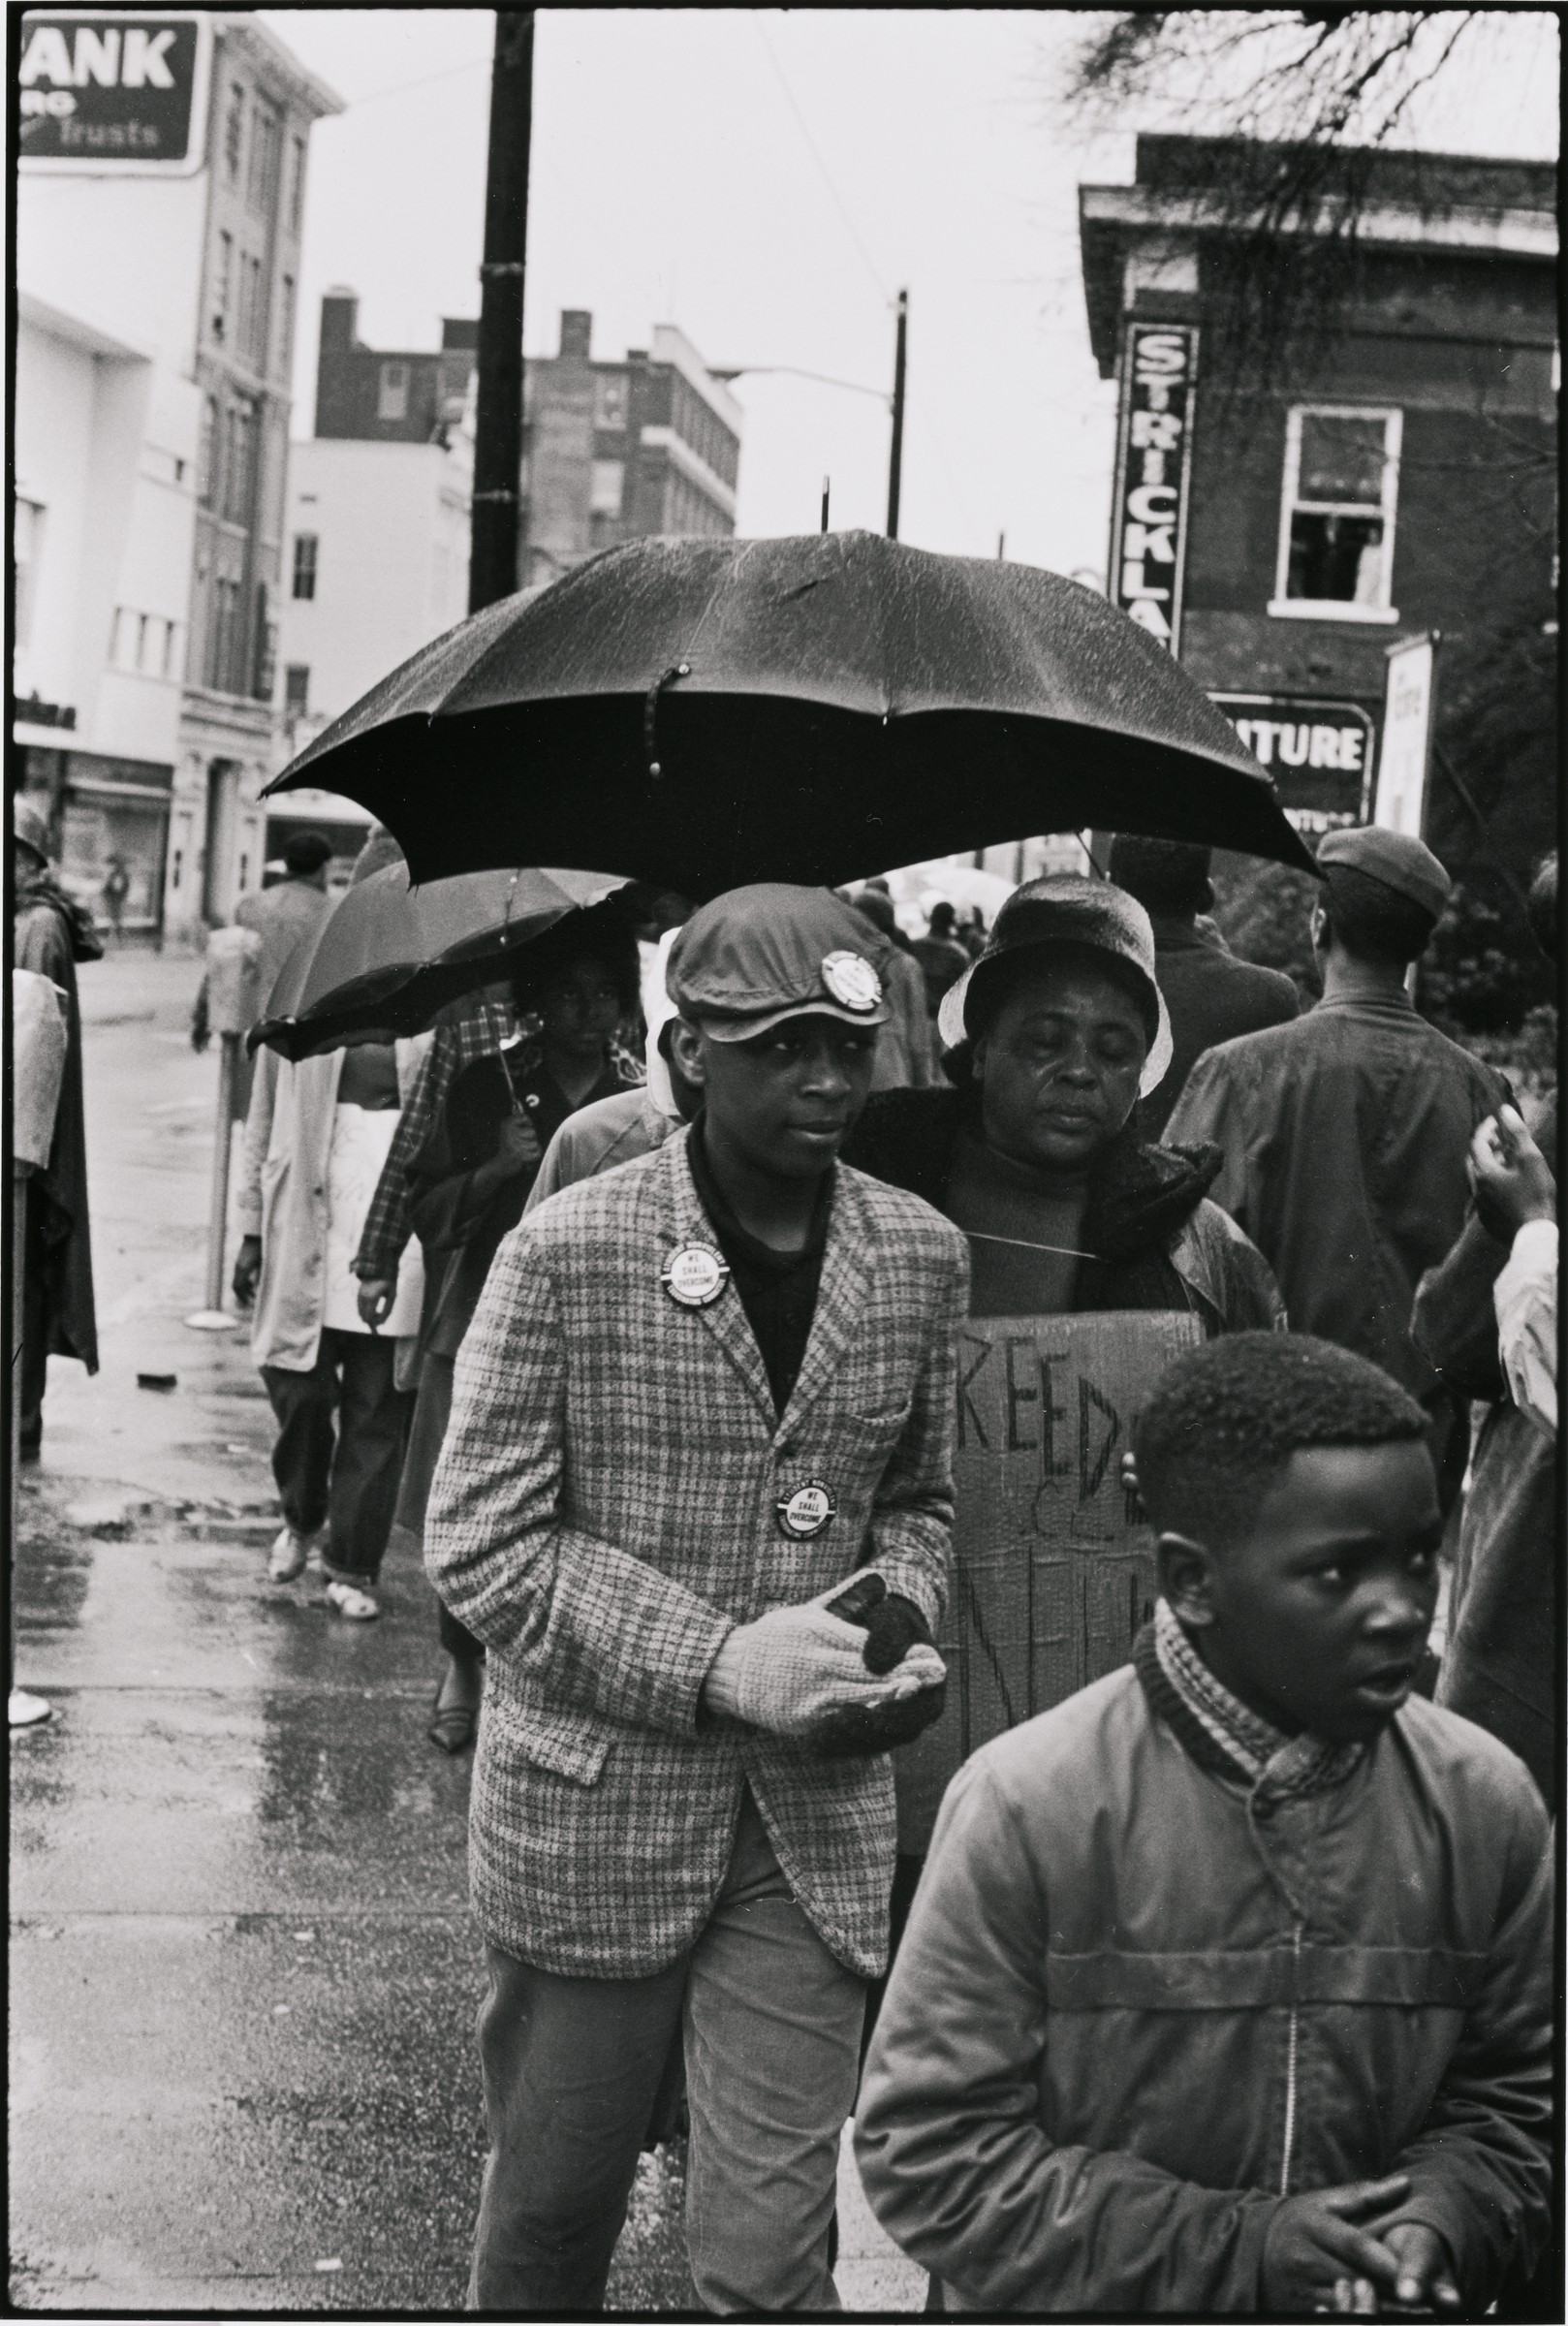 "This black and white photograph shows Fannie Lou Hamer marching under a black umbrella in a wet street accompanied by a group of young Black Americans. The young man marching next to Hamer has three buttons pinned on his clothes and hat that read ""We Shall Overcome."" A boy in the foreground clasps his hands. Brick buildings on both sides of the street are visible in the background."